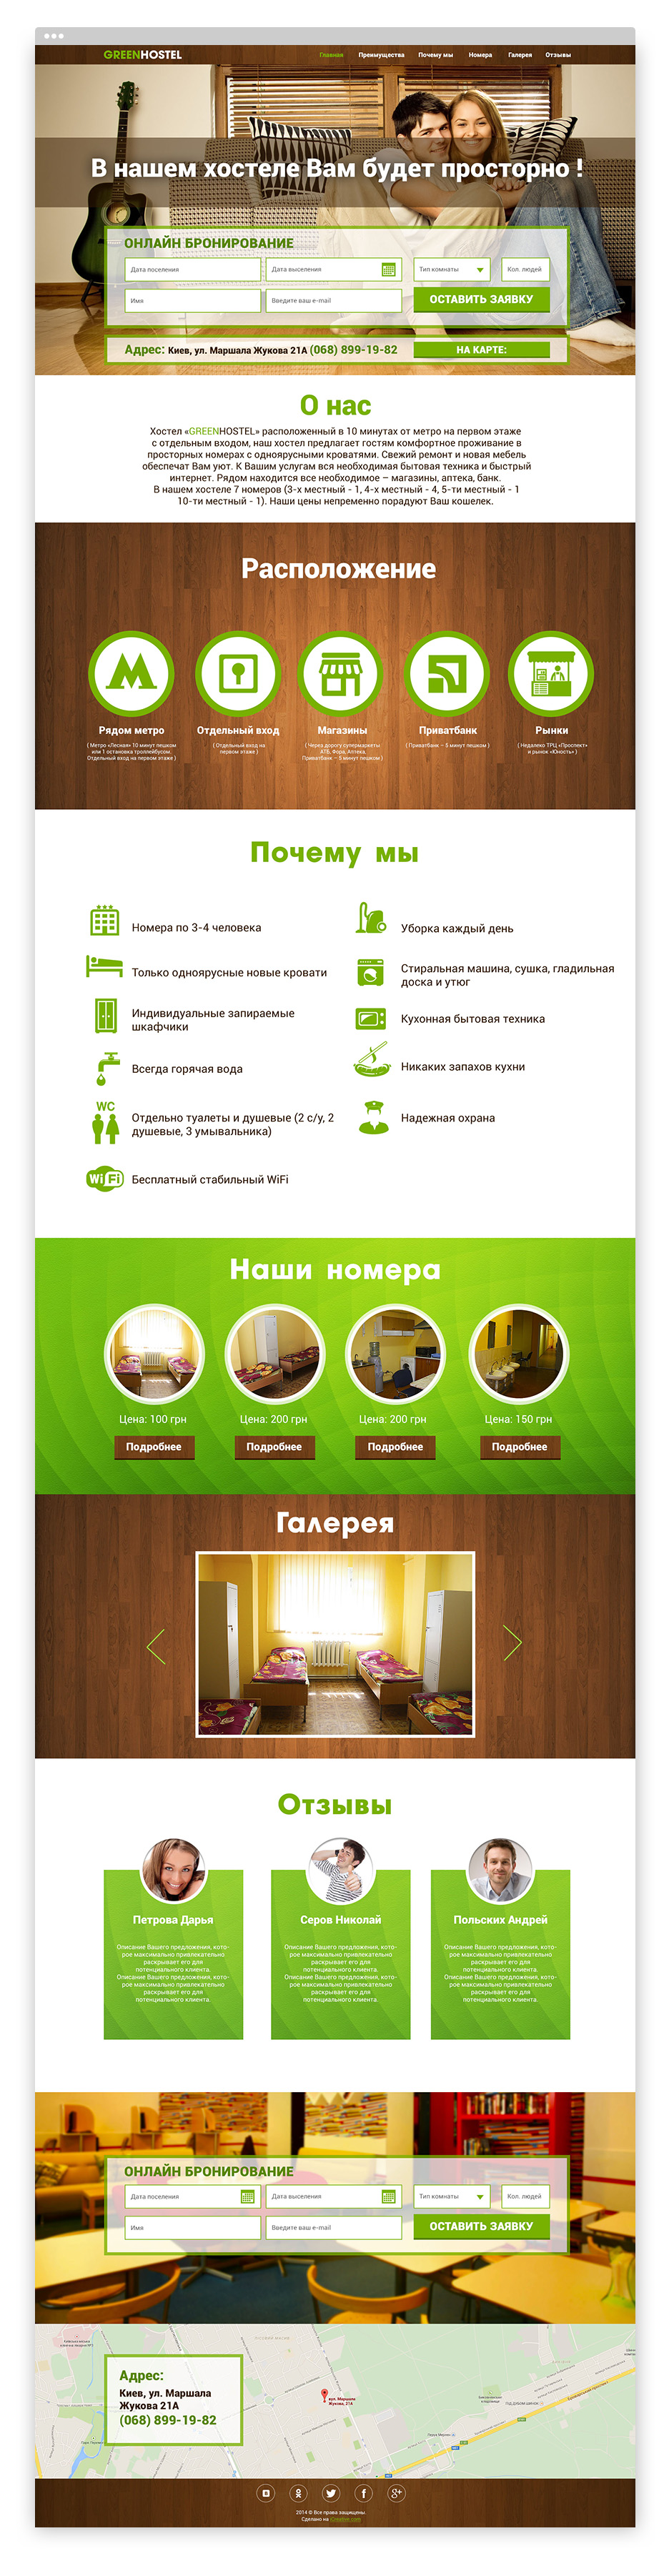 icreative-com-ua_hostel